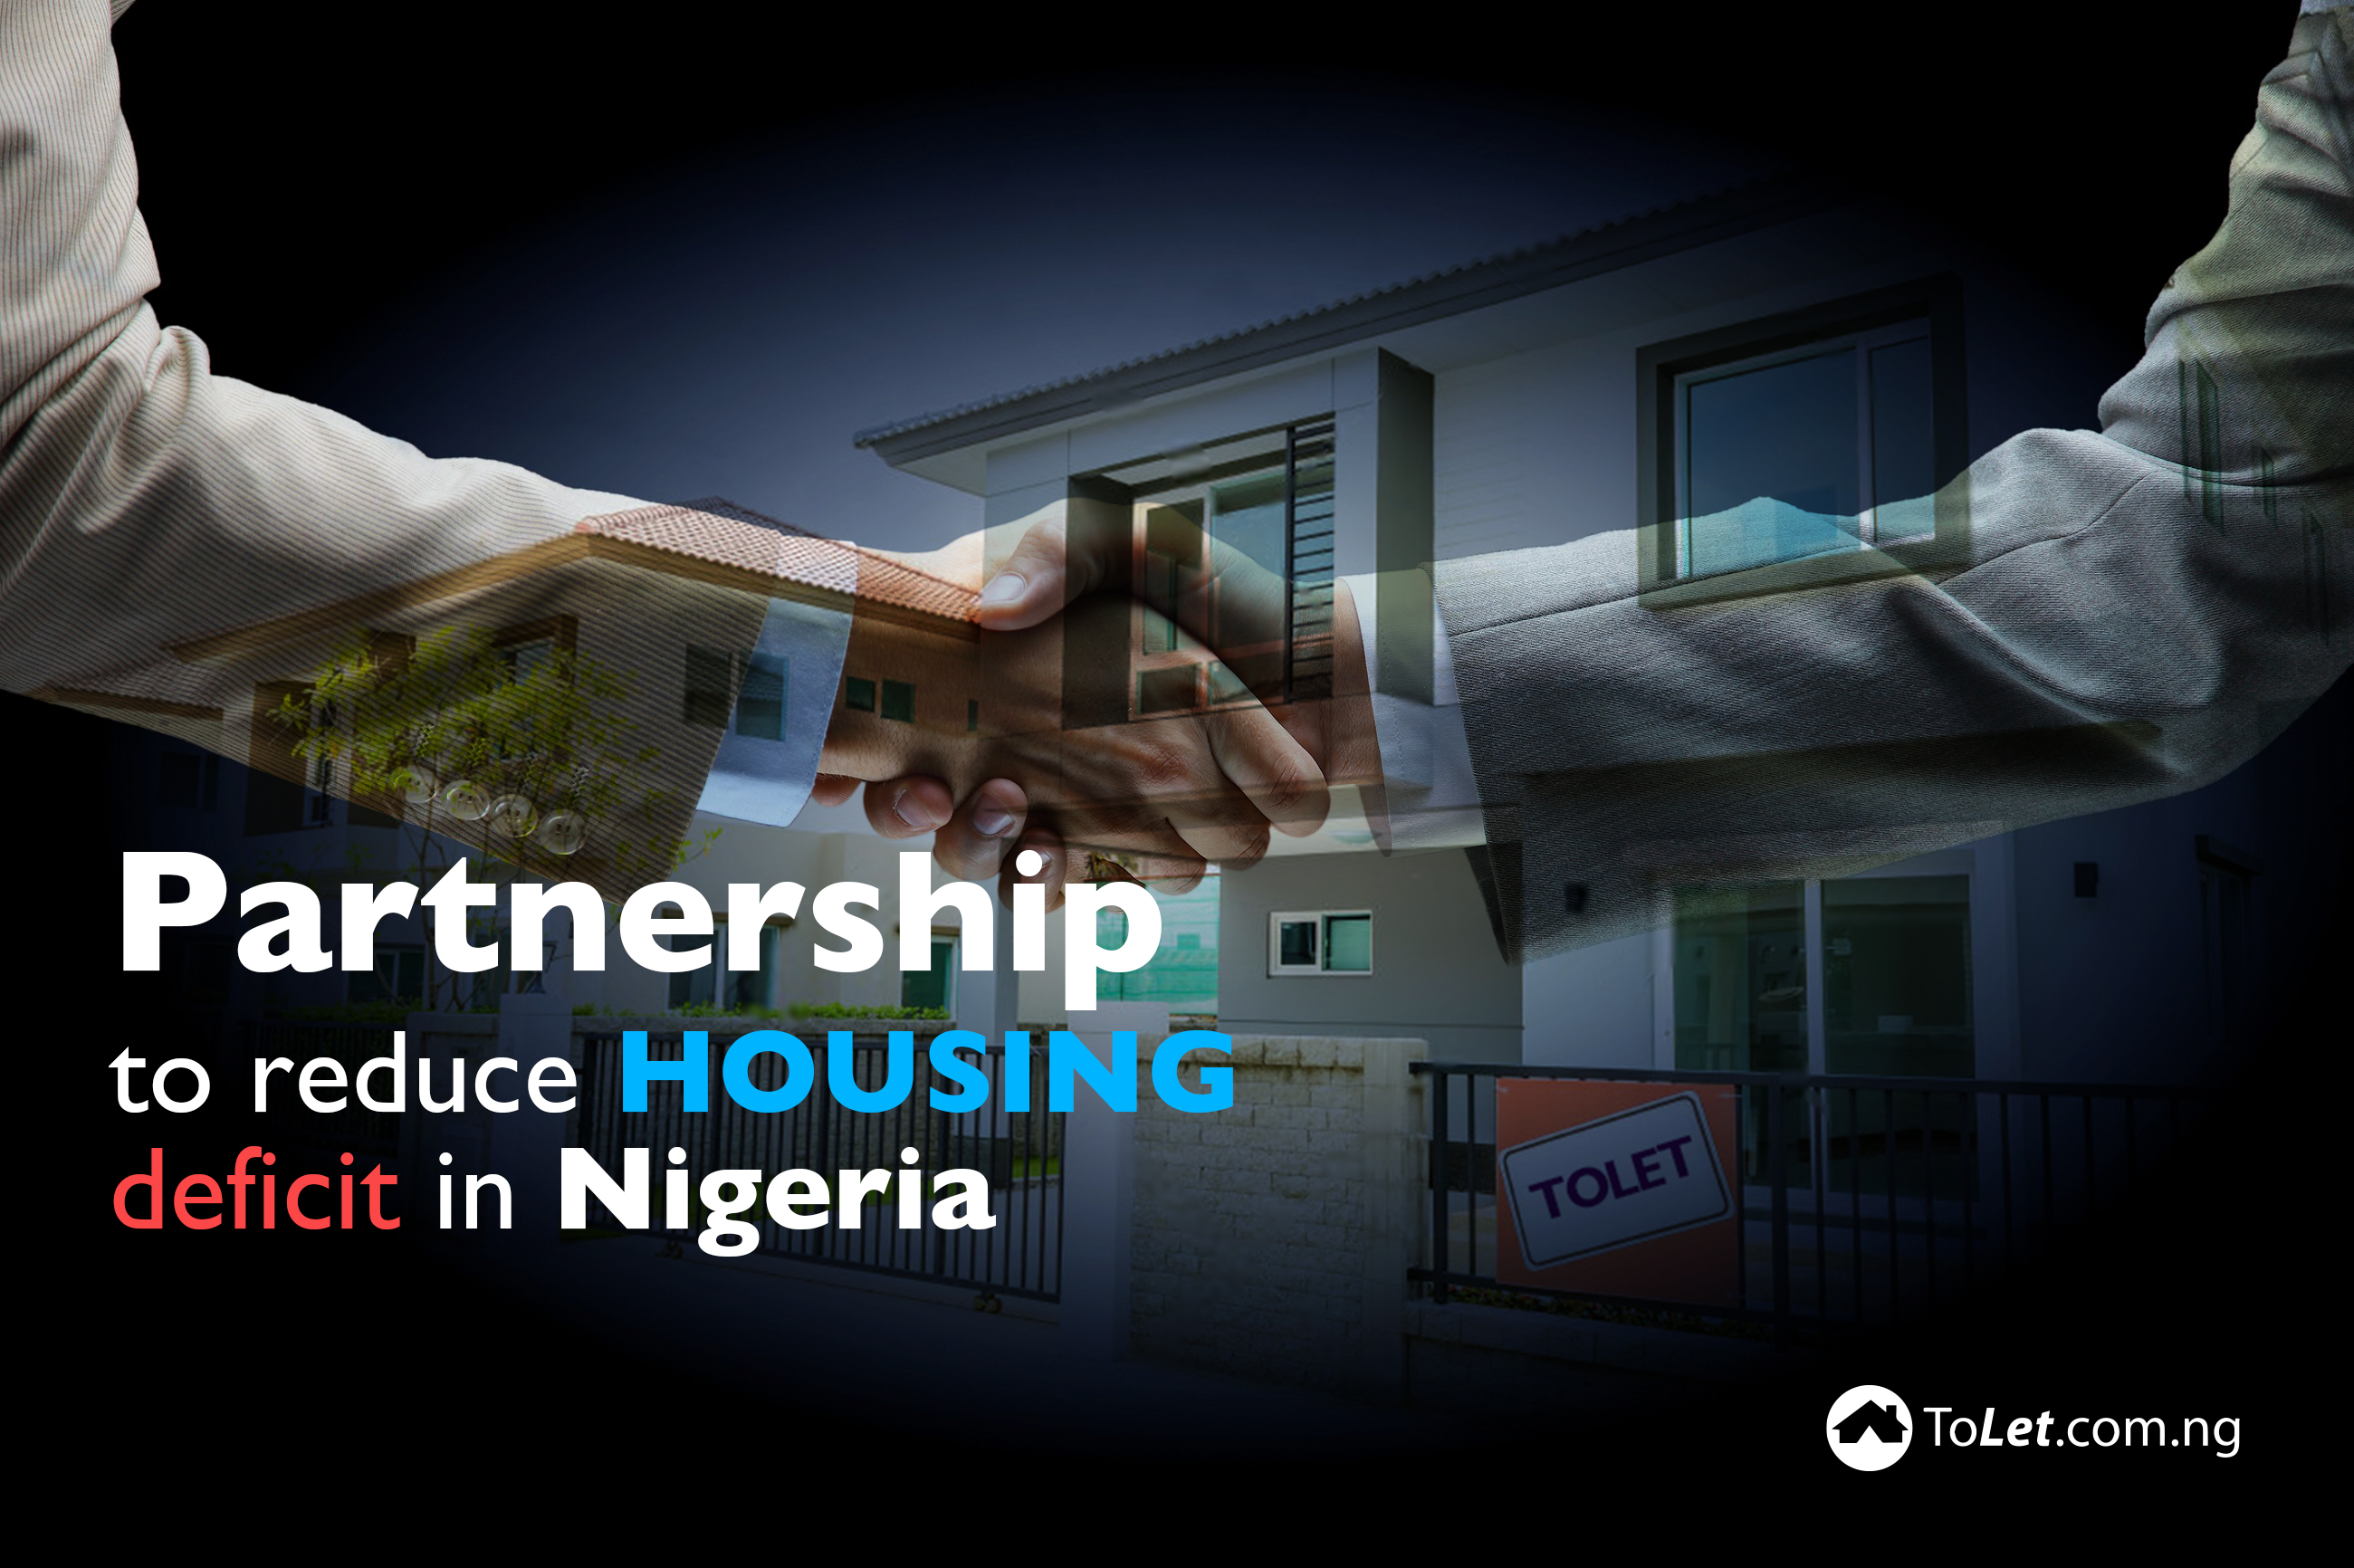 Partnership to reduce housing deficit in Nigeria